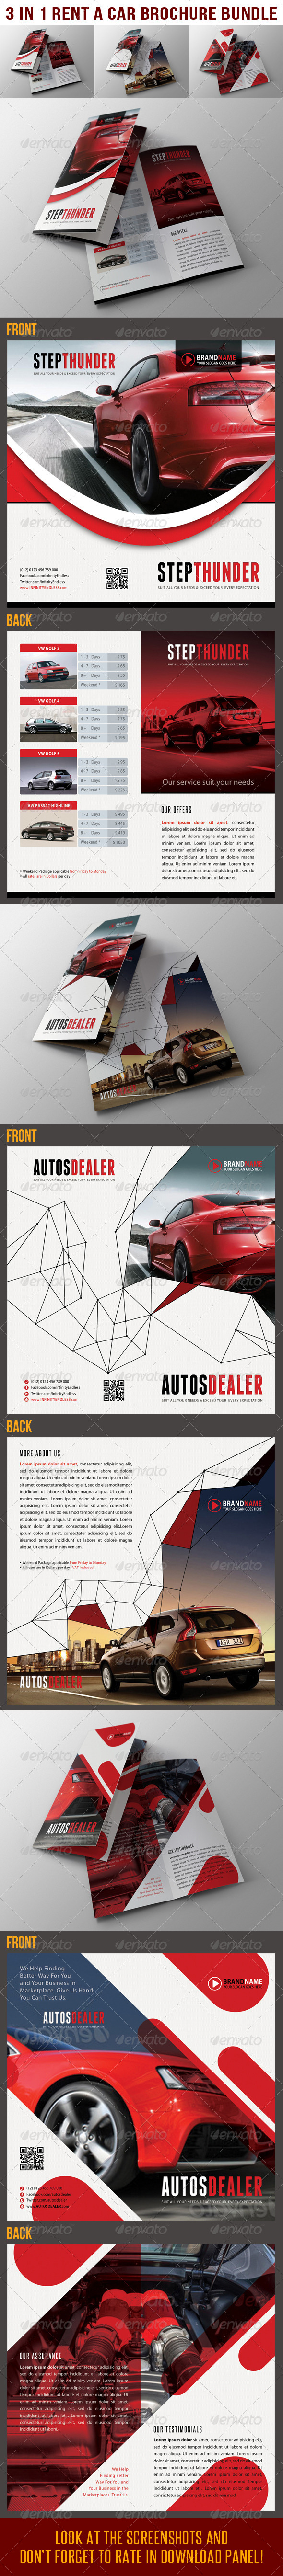 GraphicRiver 3 in 1 Rent A Car BiFold Brochure Bundle 02 6753258